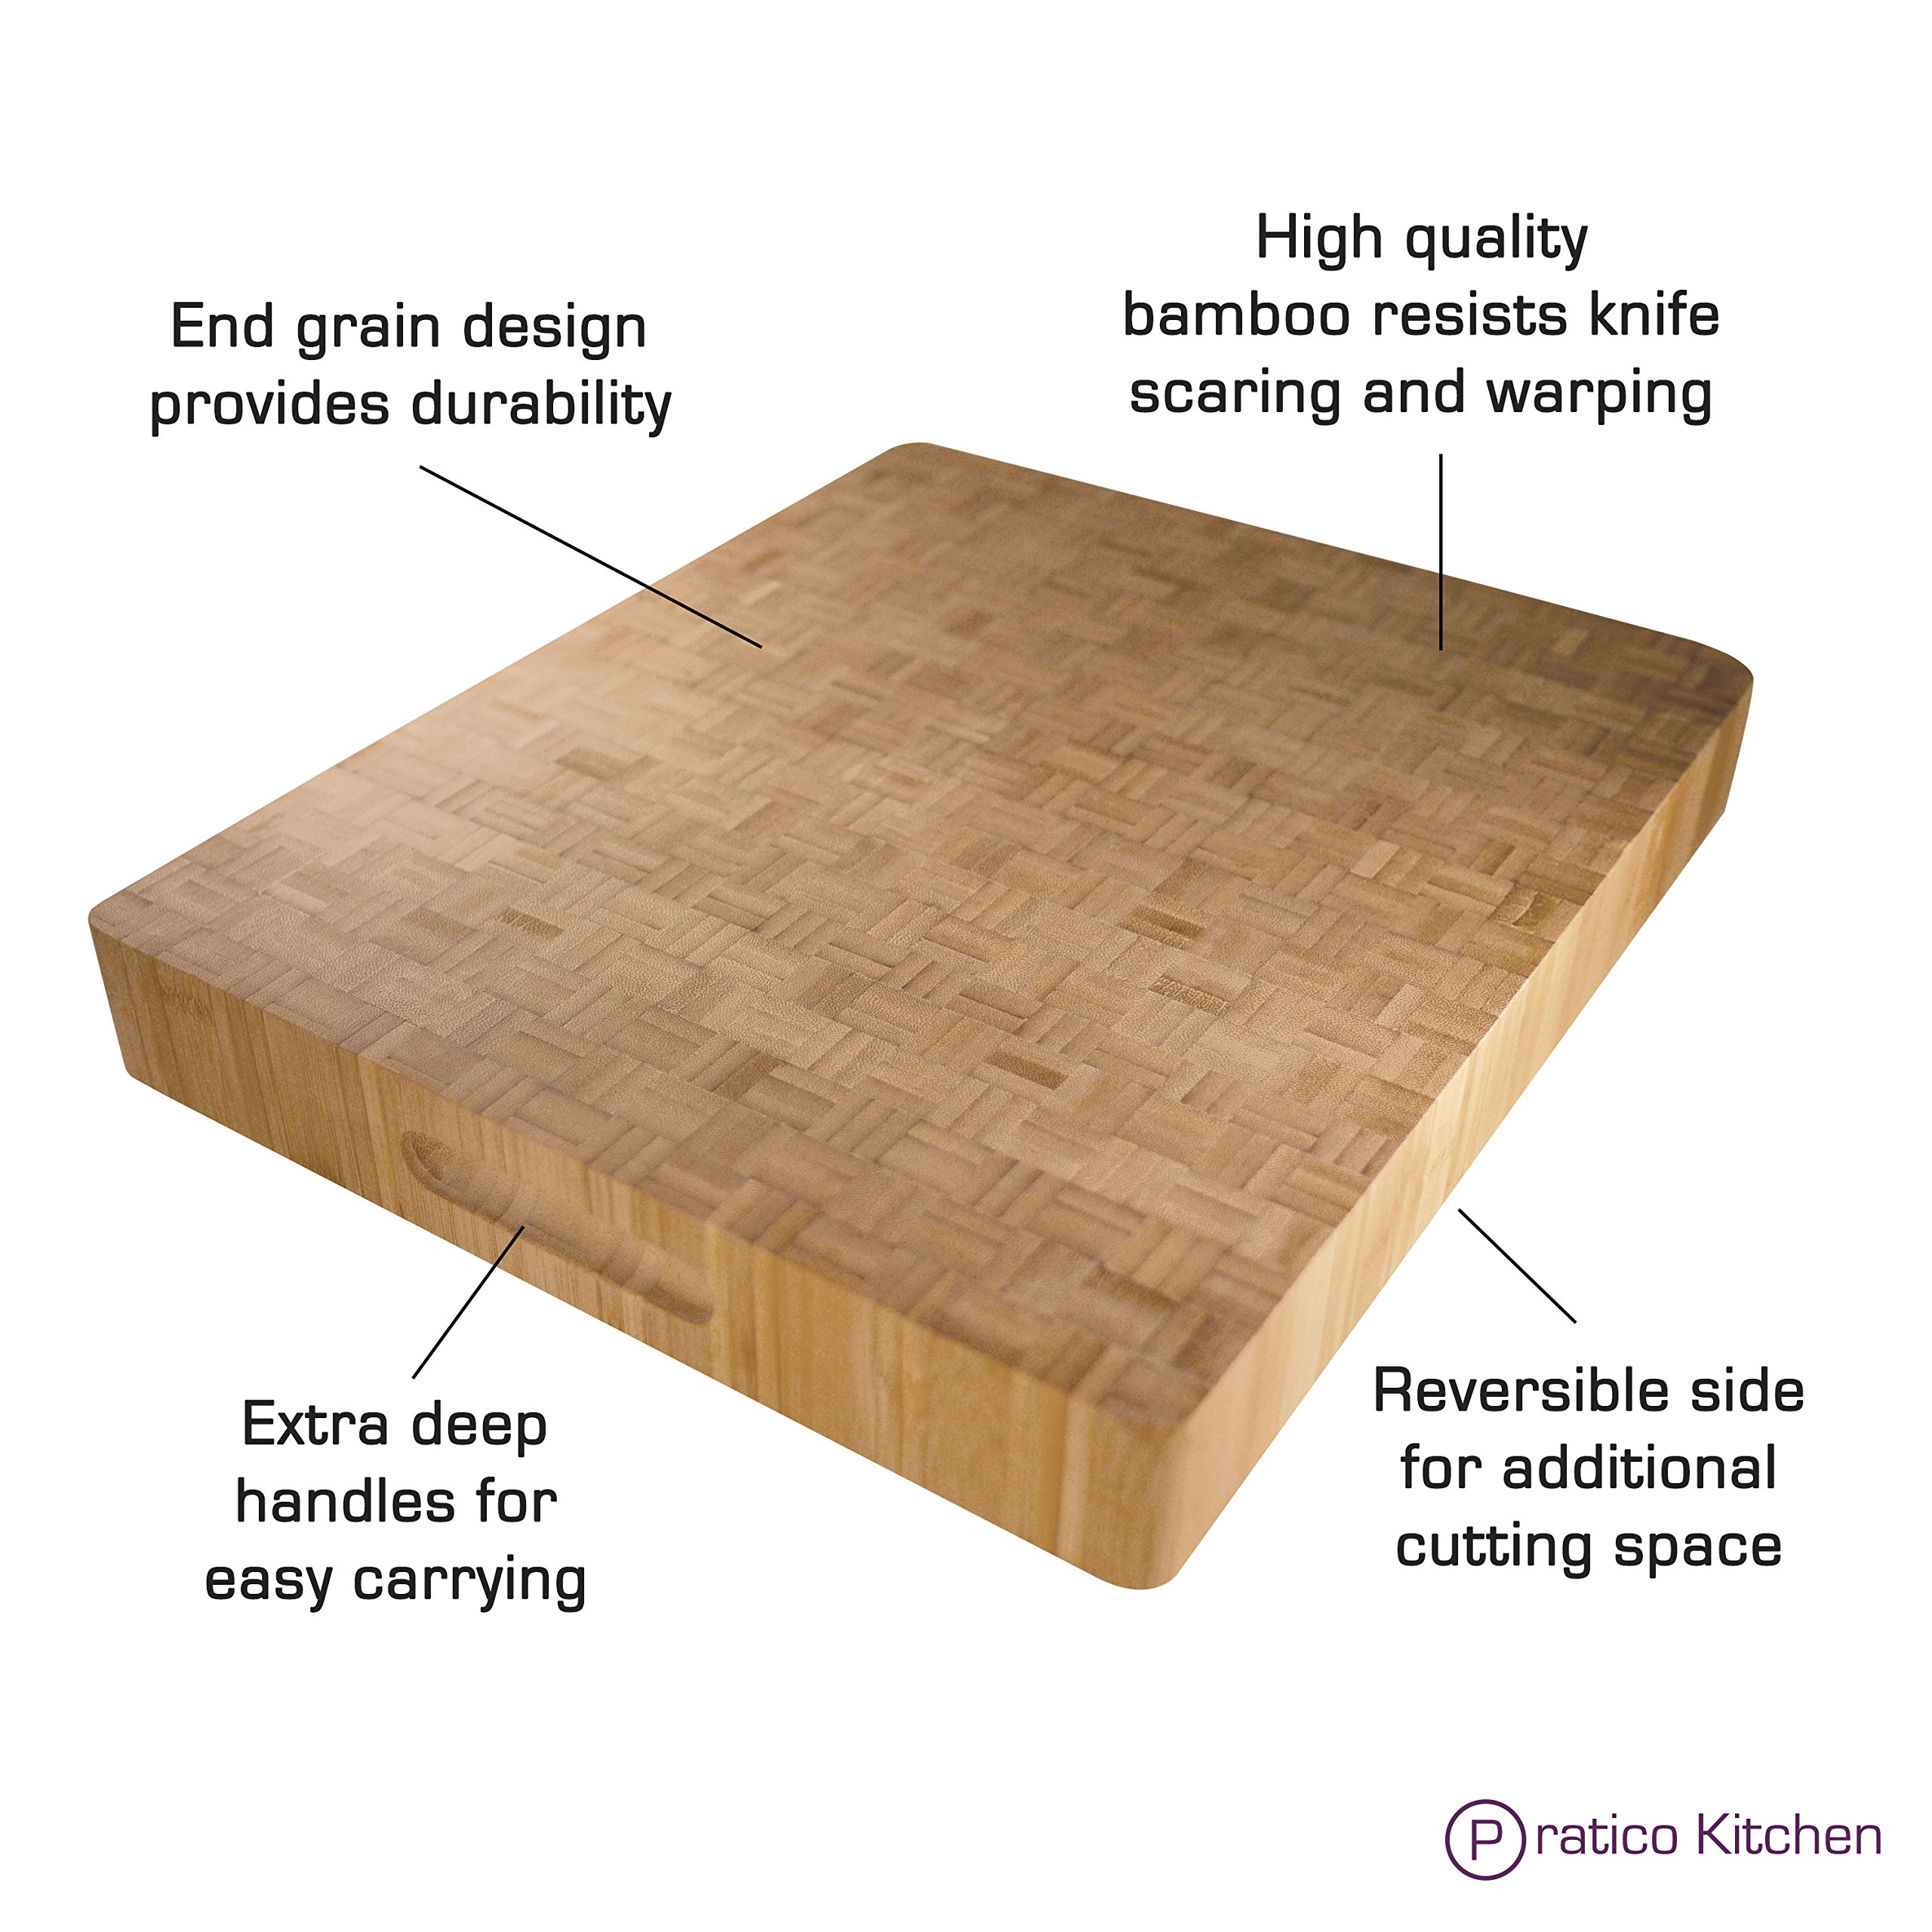 Pratico Kitchen Reversible Organic End Grain Butcher Chopping Block & Serving Tray - 16.5 x 13.5 x 2 inches by Pratico Kitchen (Image #3)